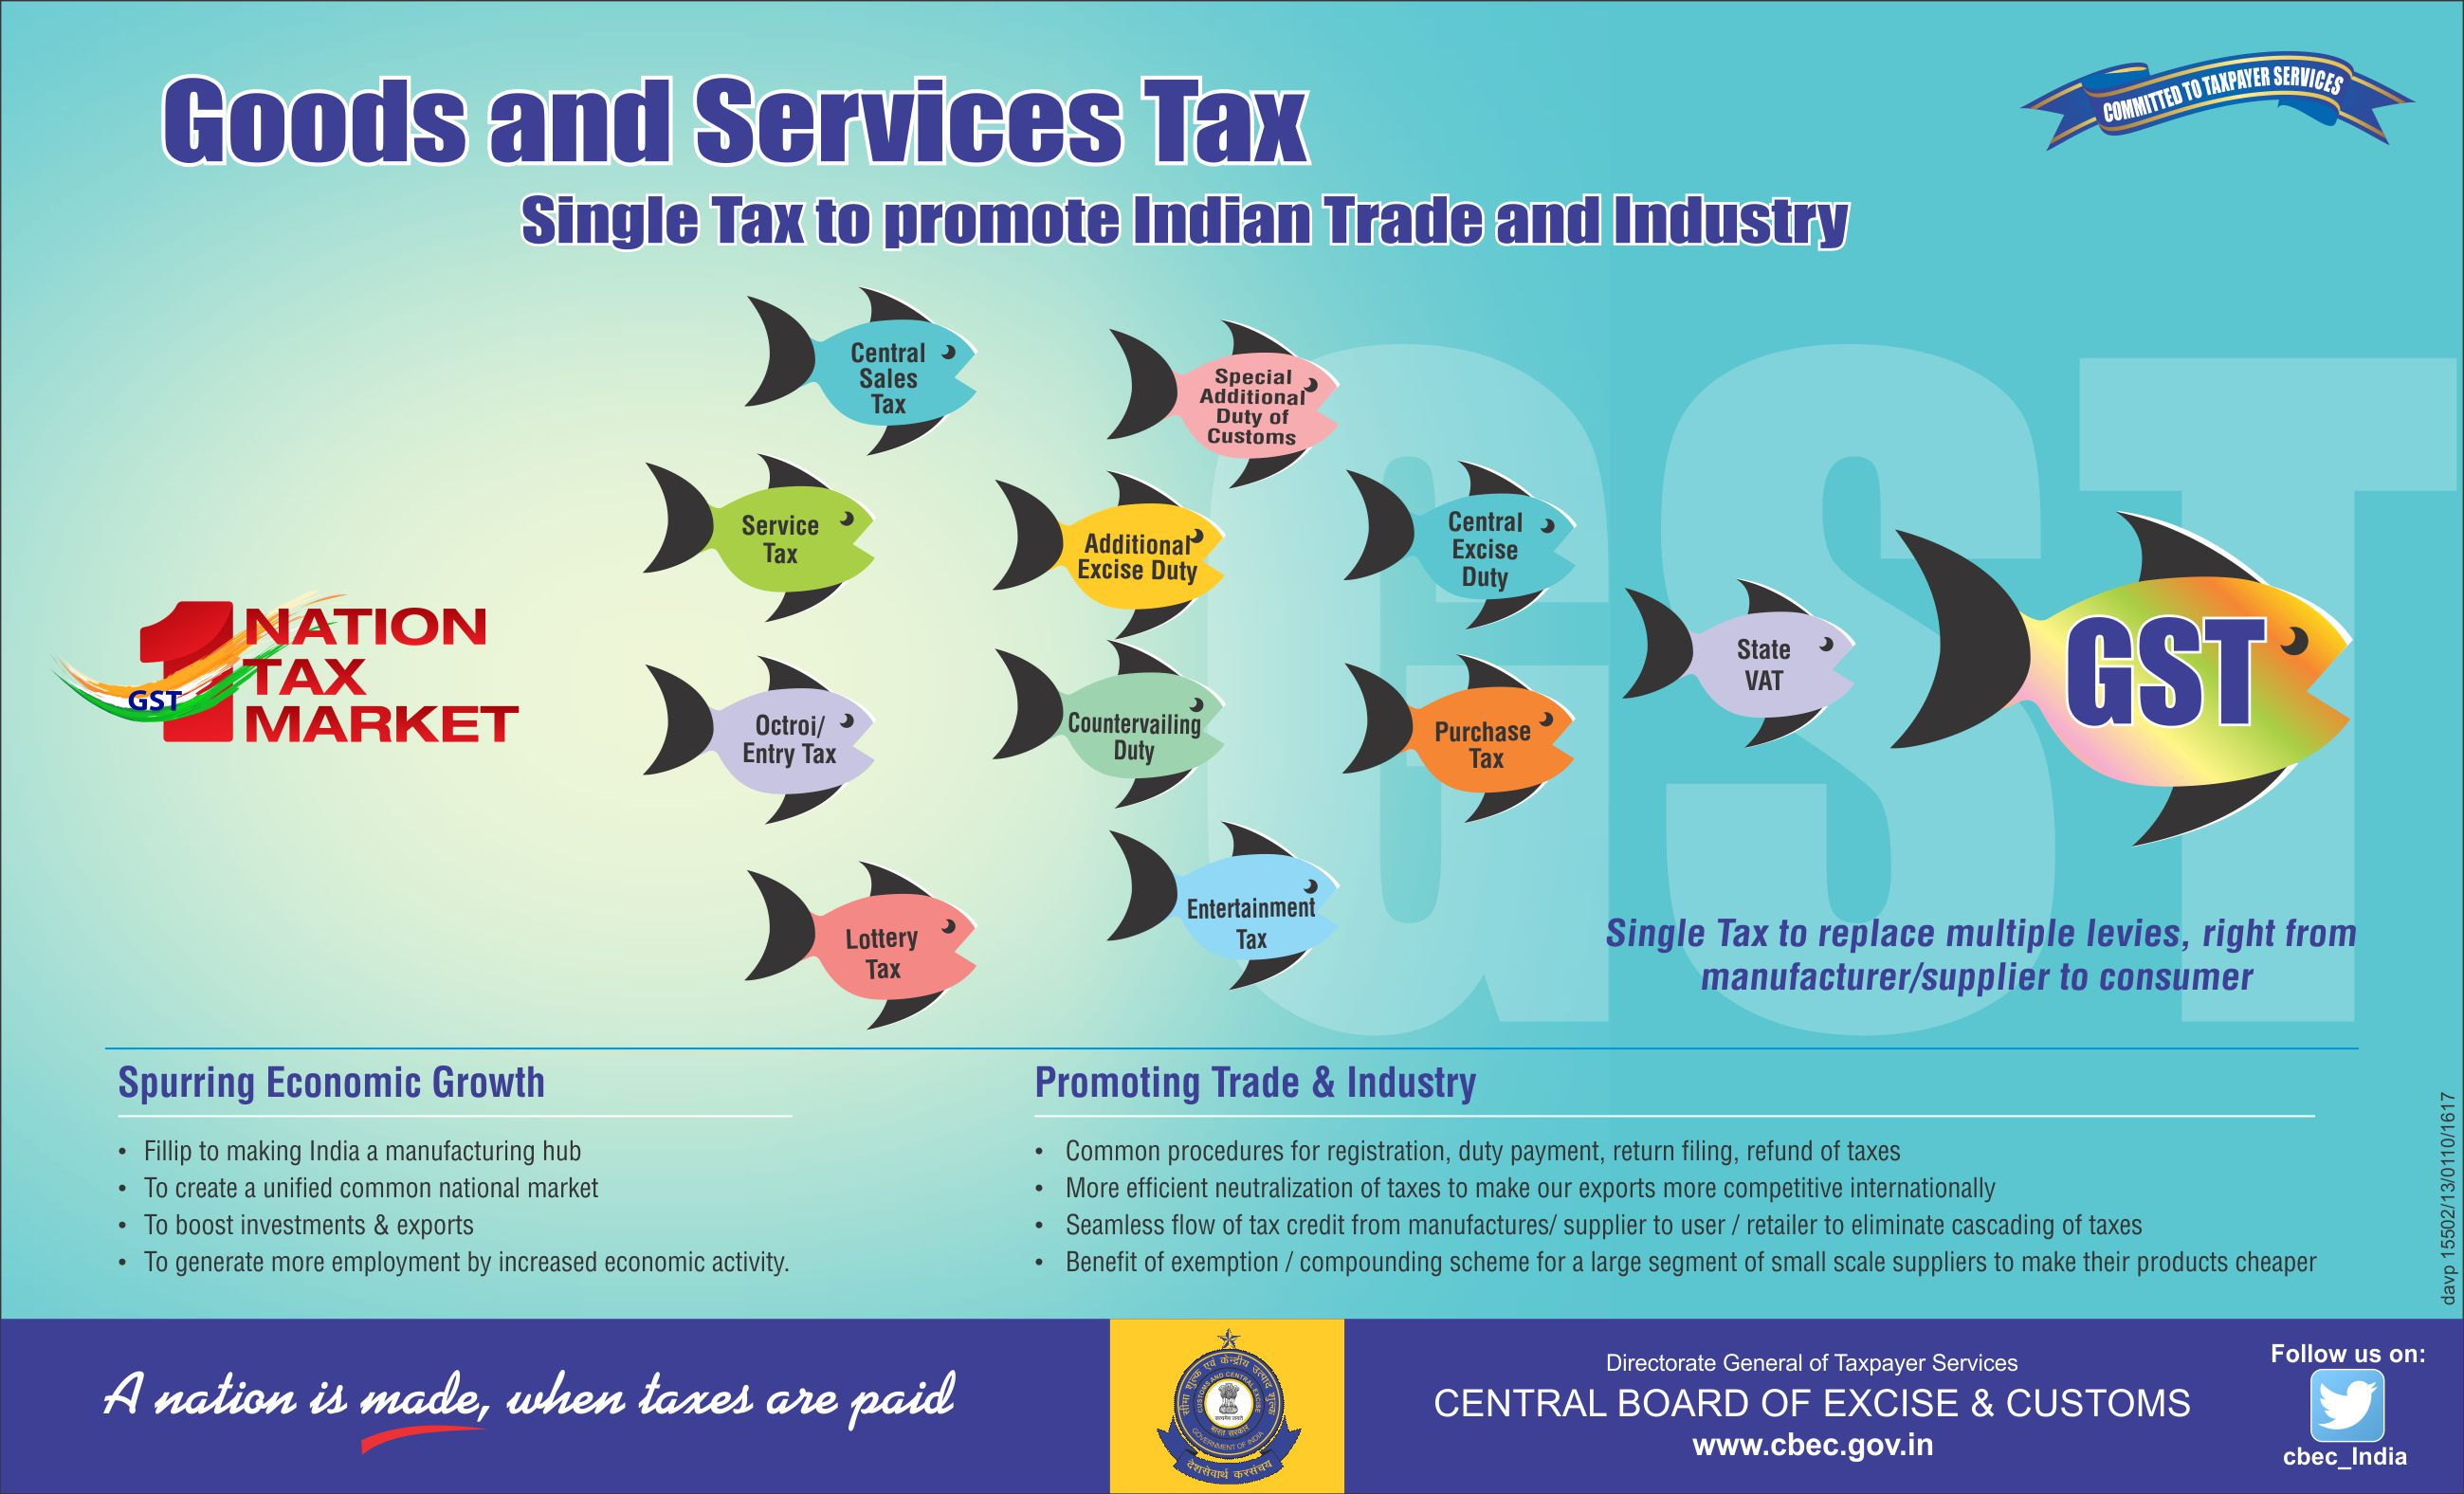 Home Page Of Central Board Of Indirect Taxes And Customs